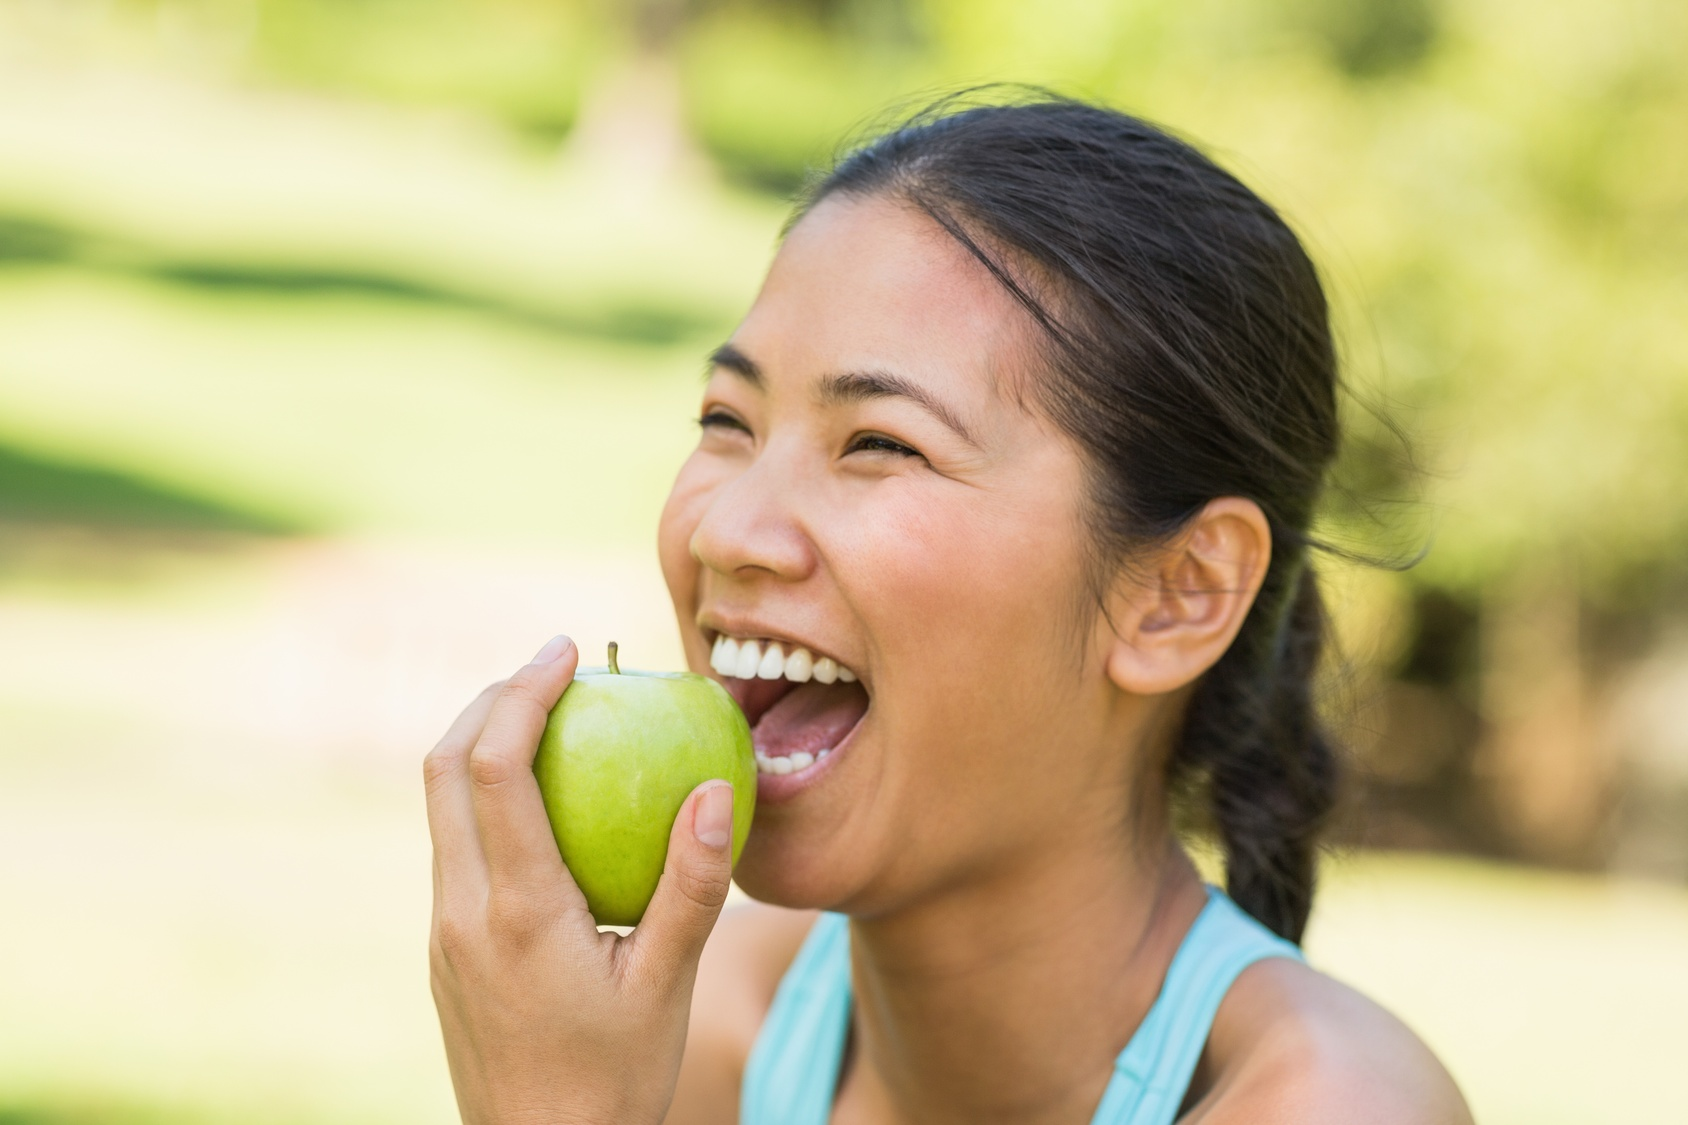 Foods that Can Improve Your Dental Health